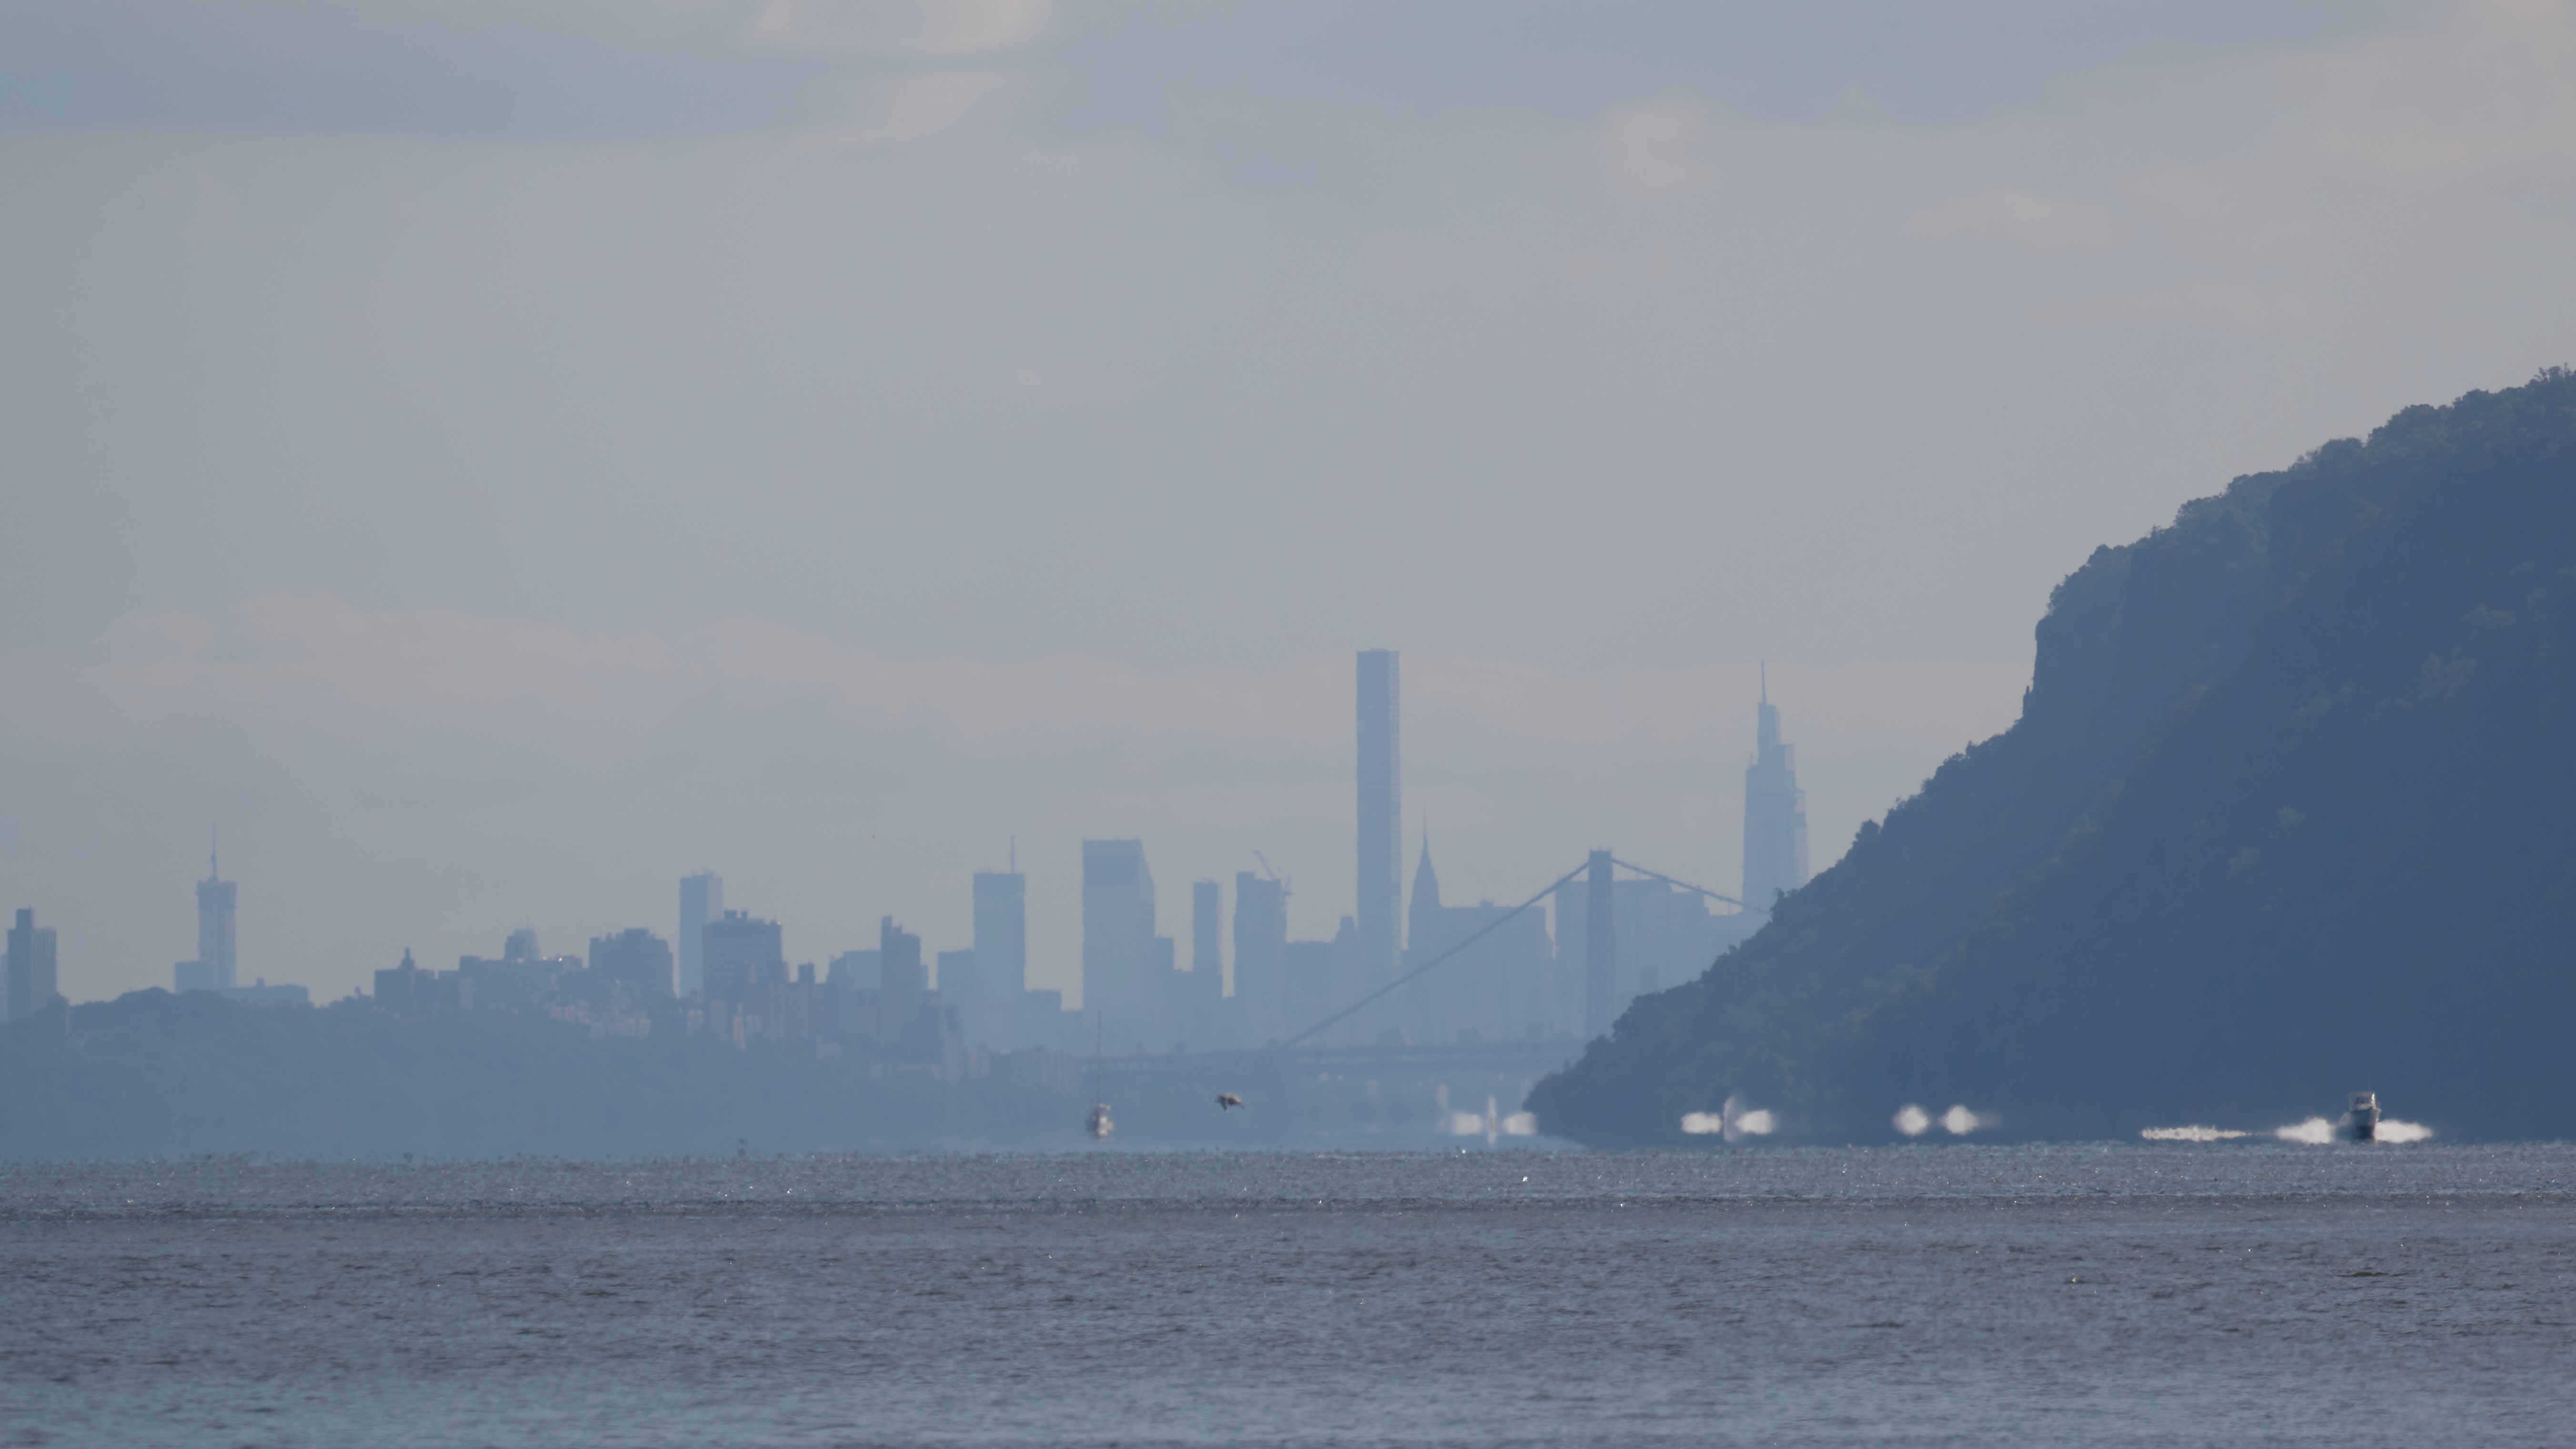 View of bluffs along Hudson River, with Manhattan skyline in background.